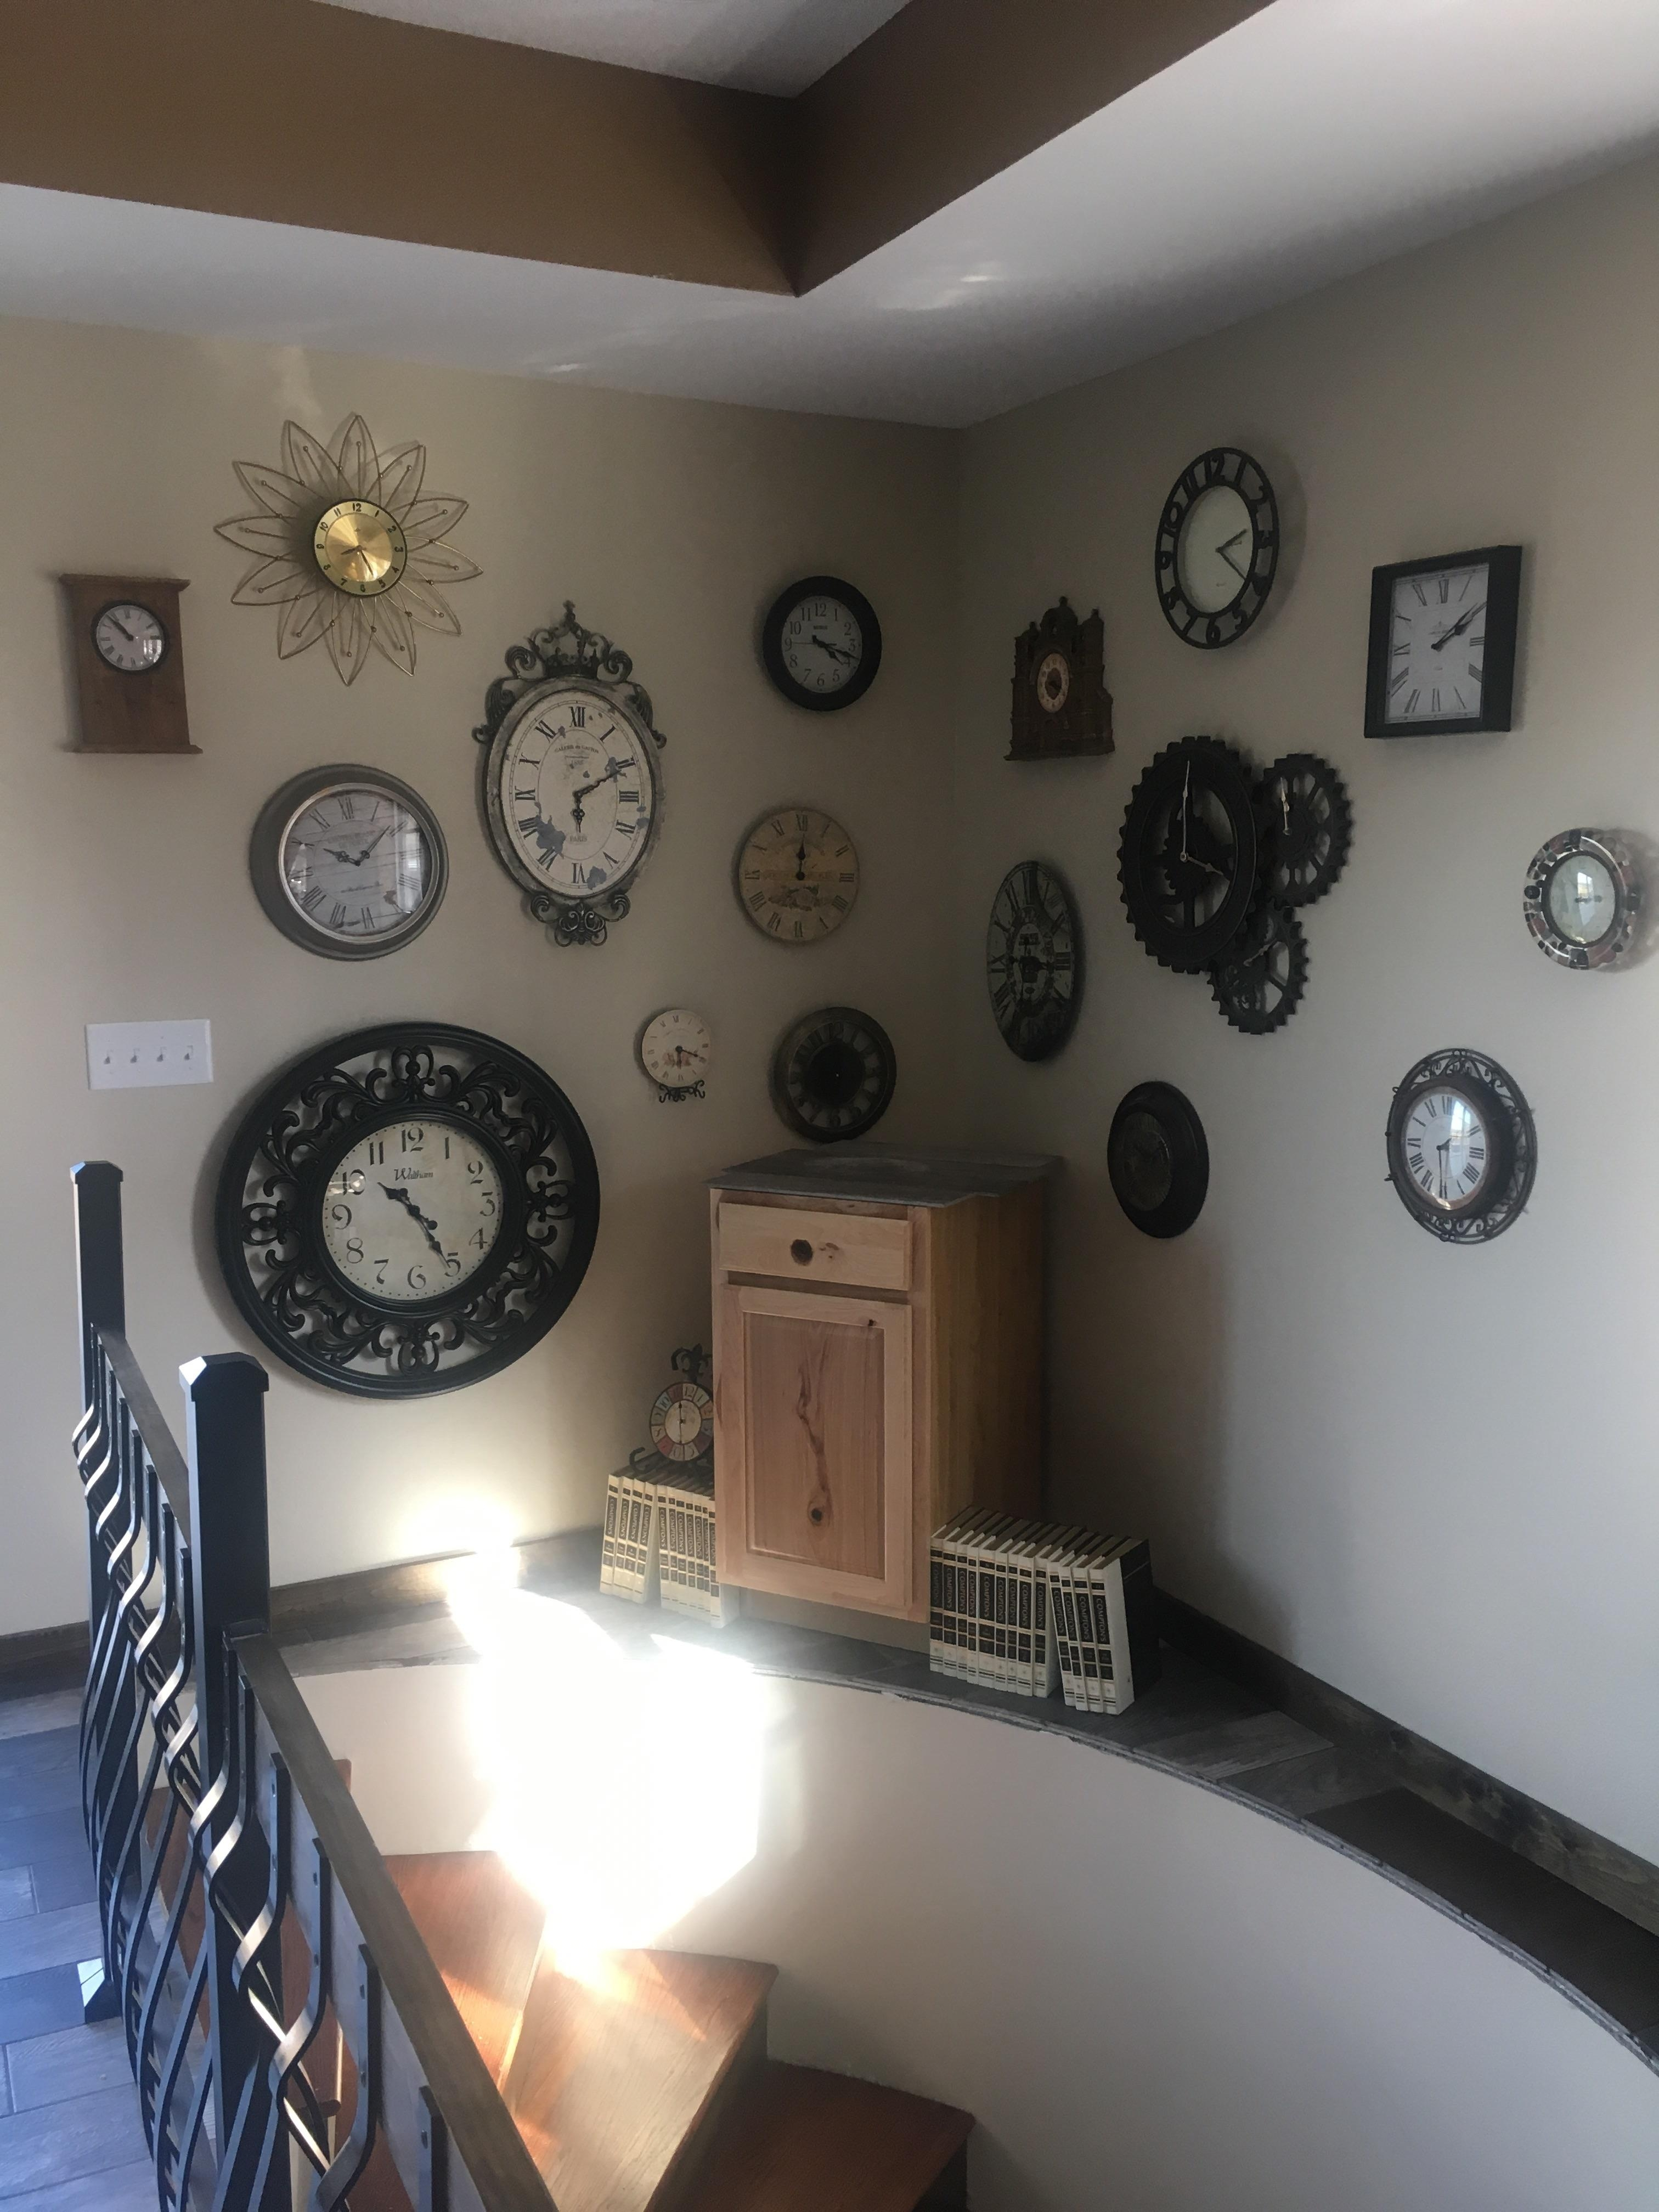 This Clock Wall Is Over A Spiral Staircase With A Half Moon | 12 Foot Spiral Staircase | Lowes | Stair Treads | Black Spiral | Steel | Gray Interior